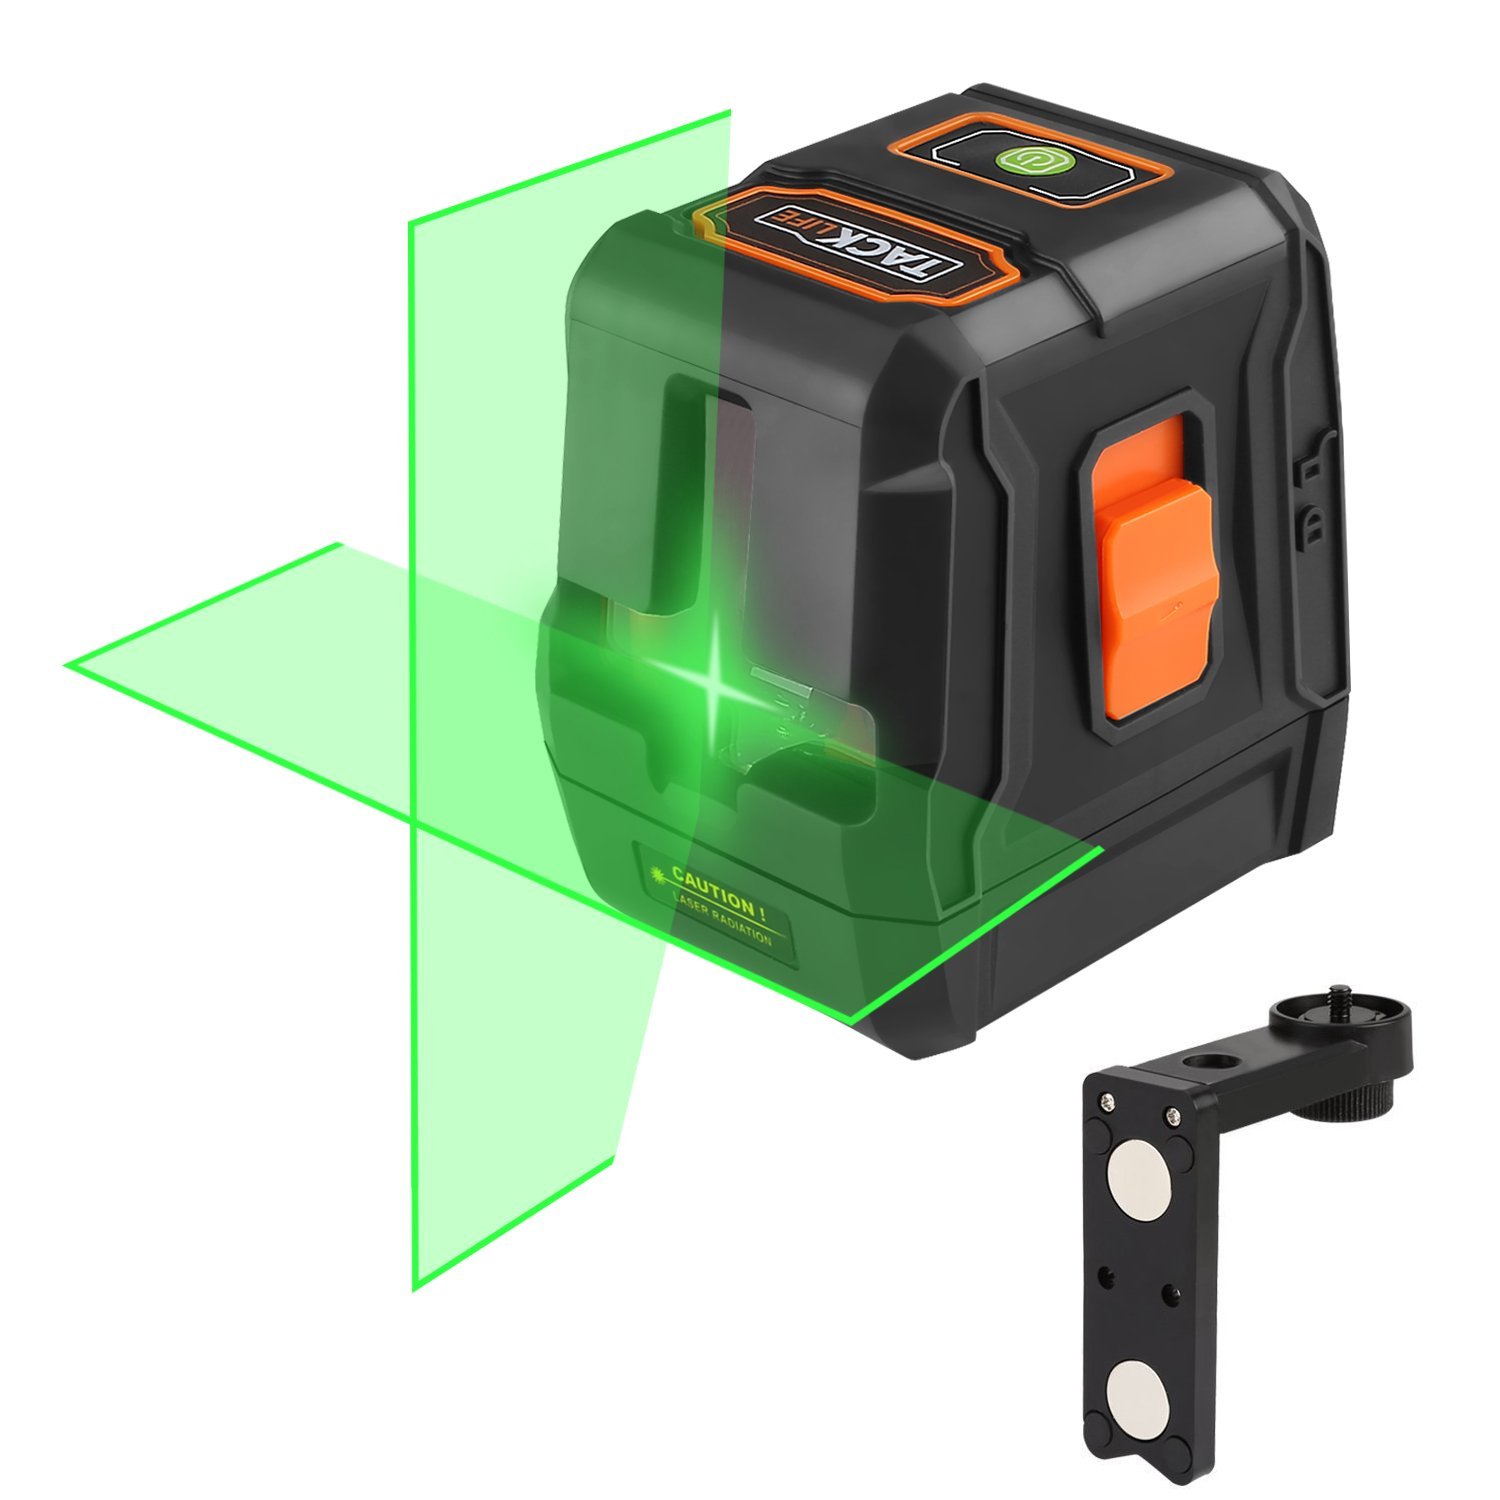 Laser Level, SC-L07G Green Laser Level 98 Ft Self-Leveling Cross-Line laser Horizontal and Vertical Lines Higher Visibility with Full Soft Rubber Covered, Flexible Magnetic Mount Base, Carrying Pouch